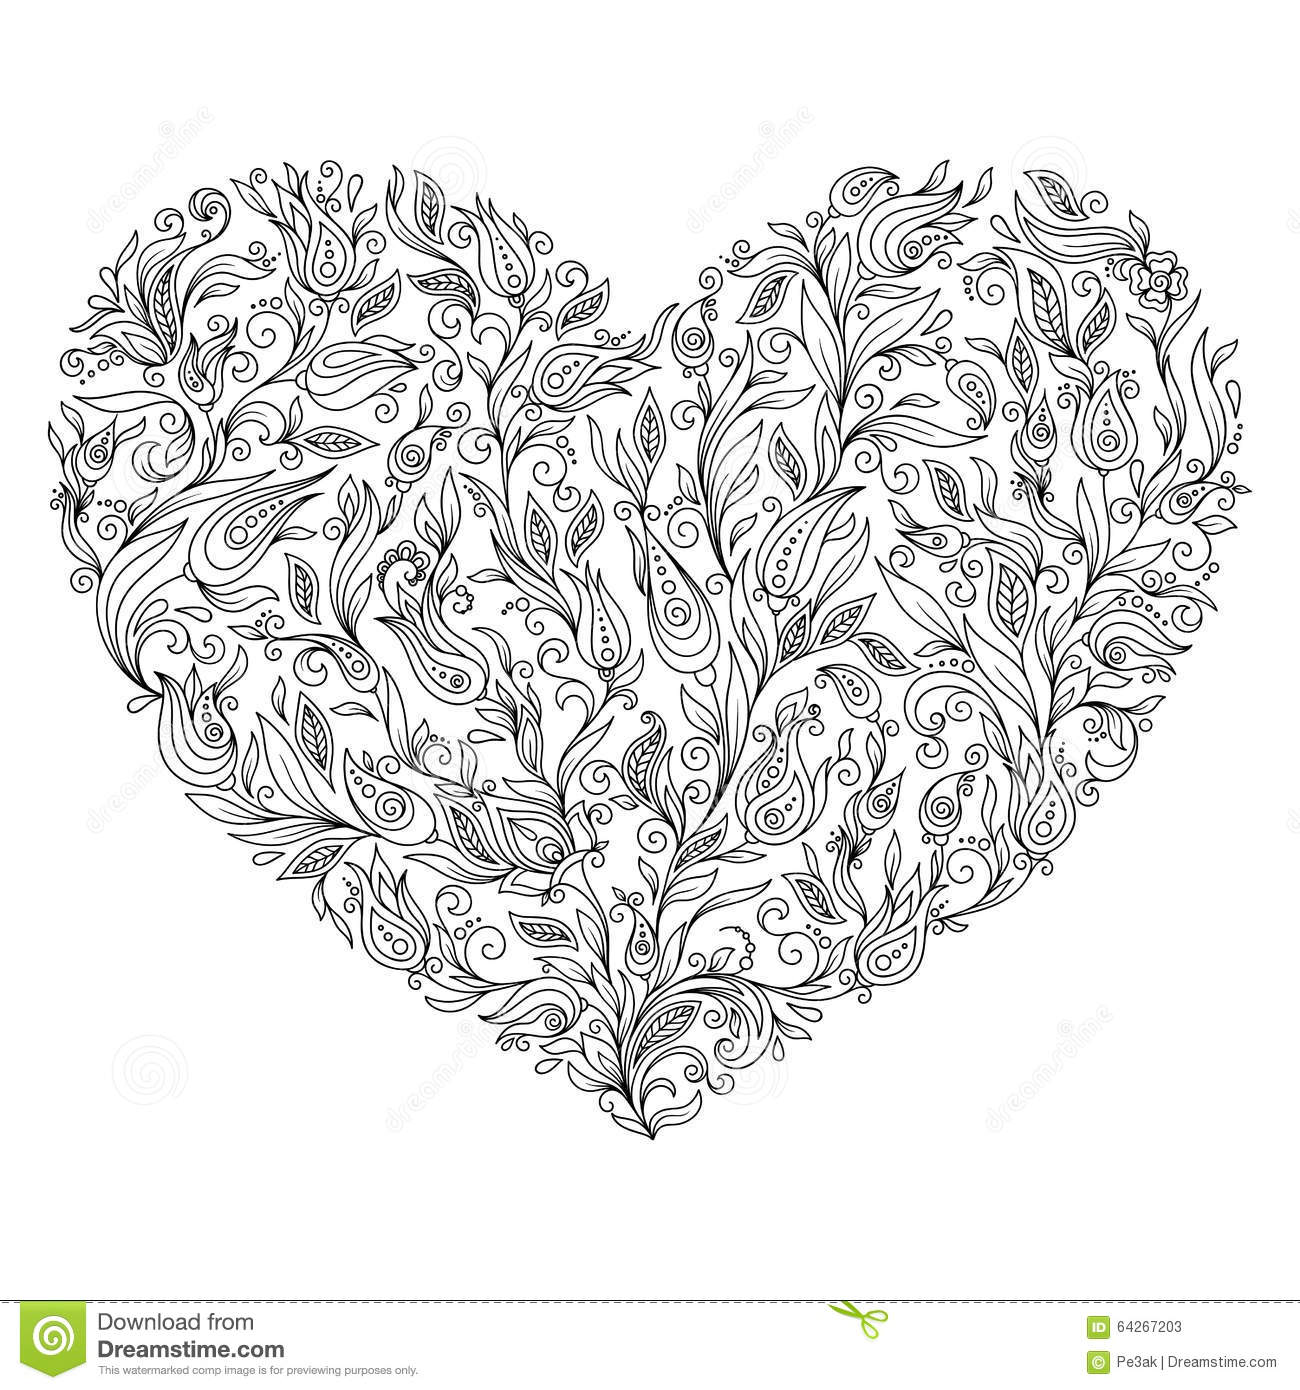 Coloring Page Flower Heart St Valentine\'s Day Greeting Card Stock ...